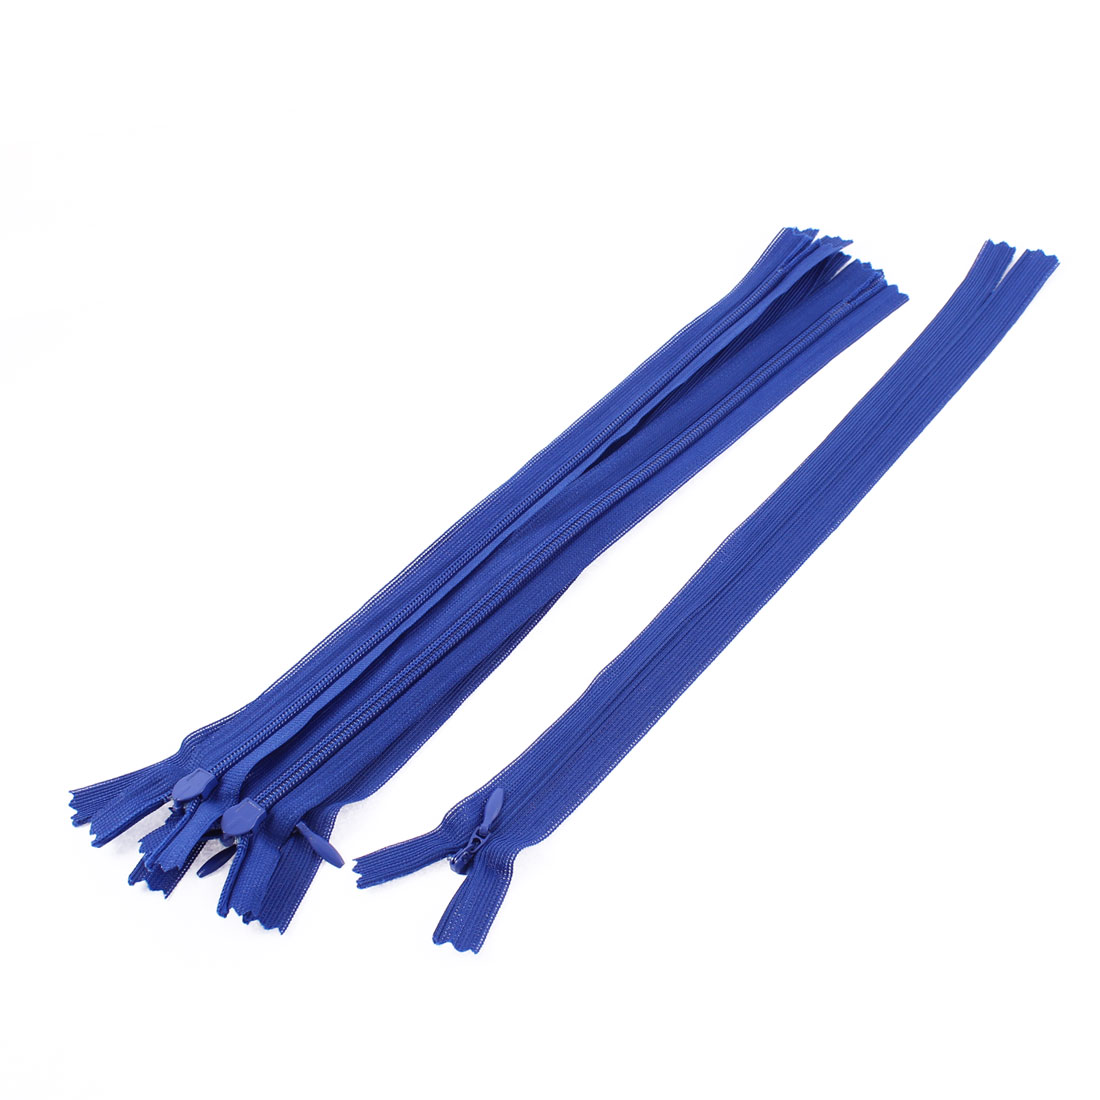 Dress Pants Closed End Nylon Zippers Tailor Sewing Craft Tool Blue 25cm 5 Pcs